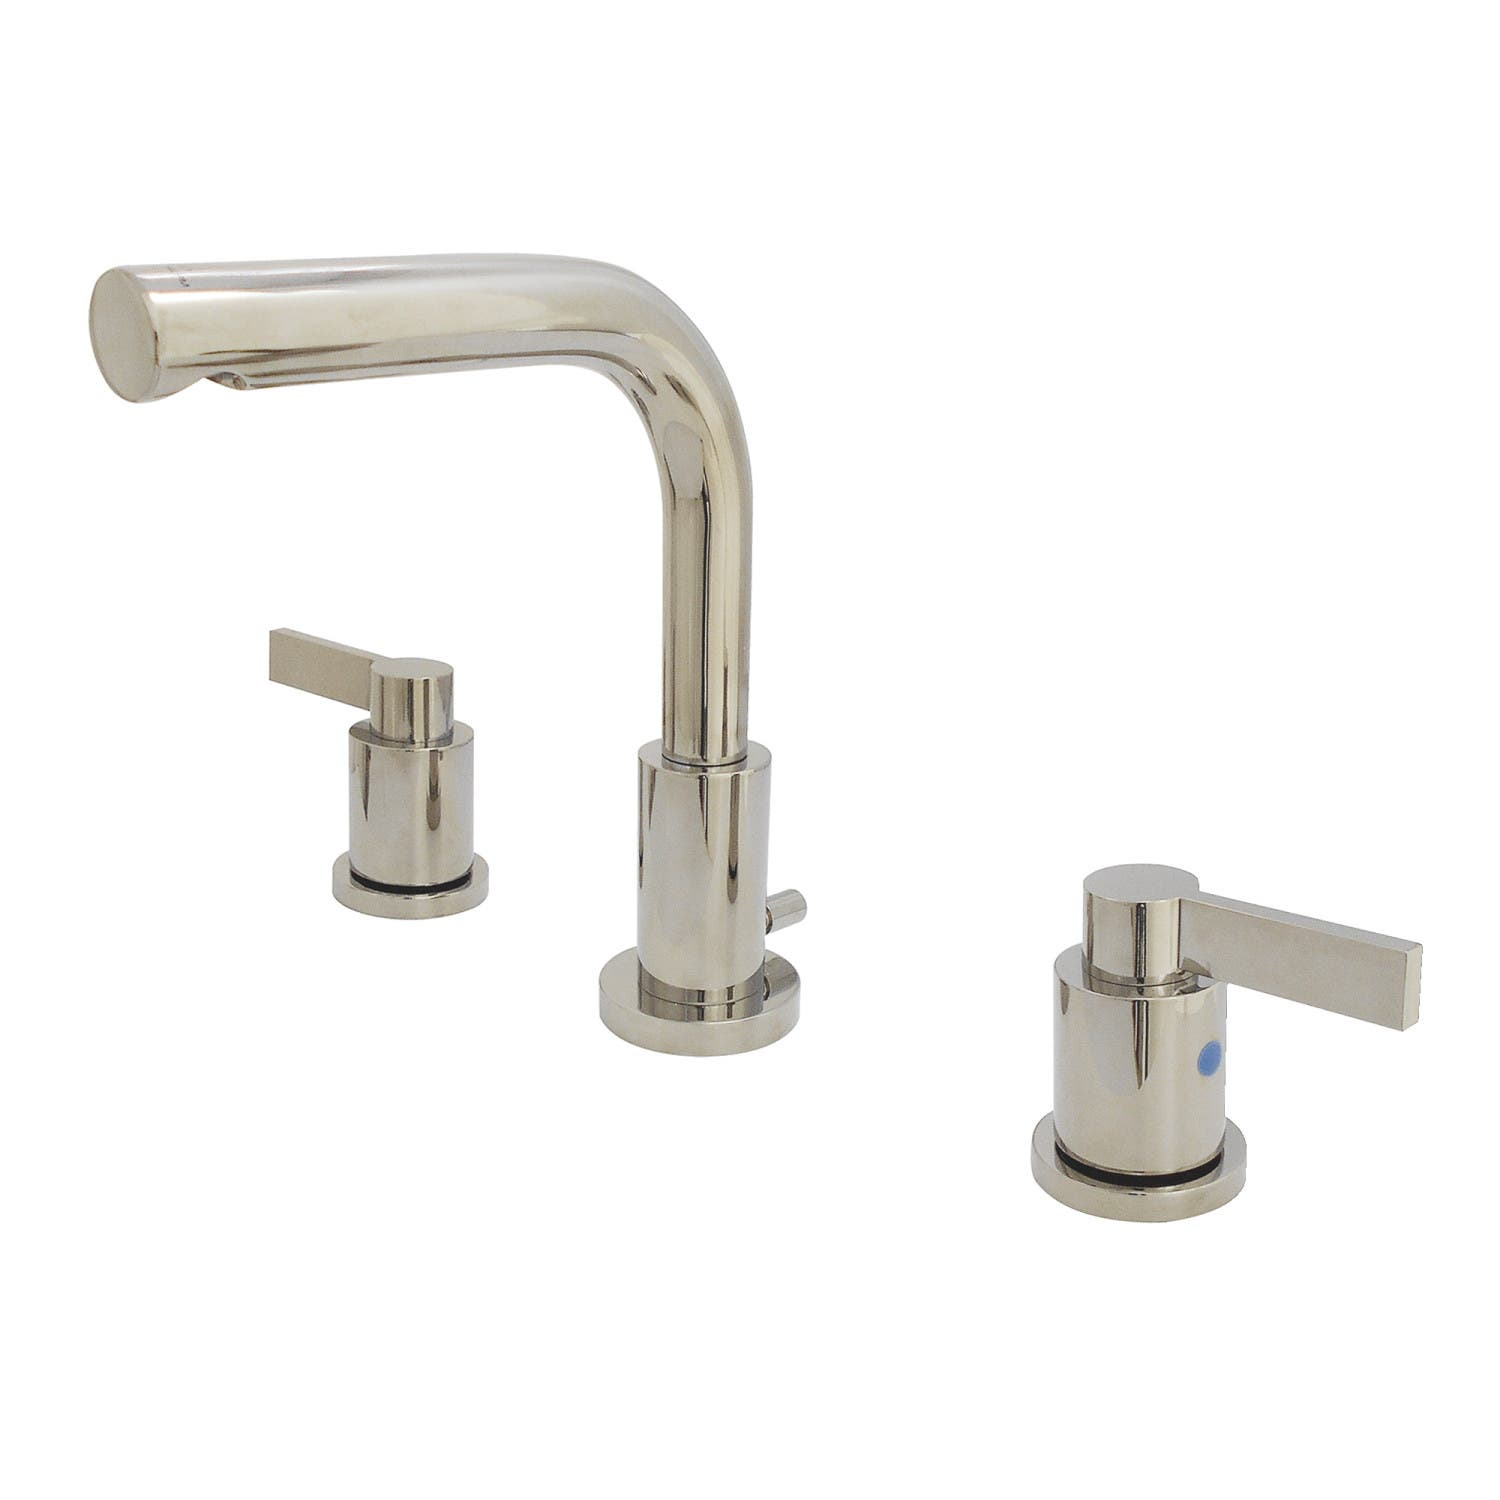 Fauceture FSC8959NDL 8-Inch Widespread Lavatory Faucet, Polished ...